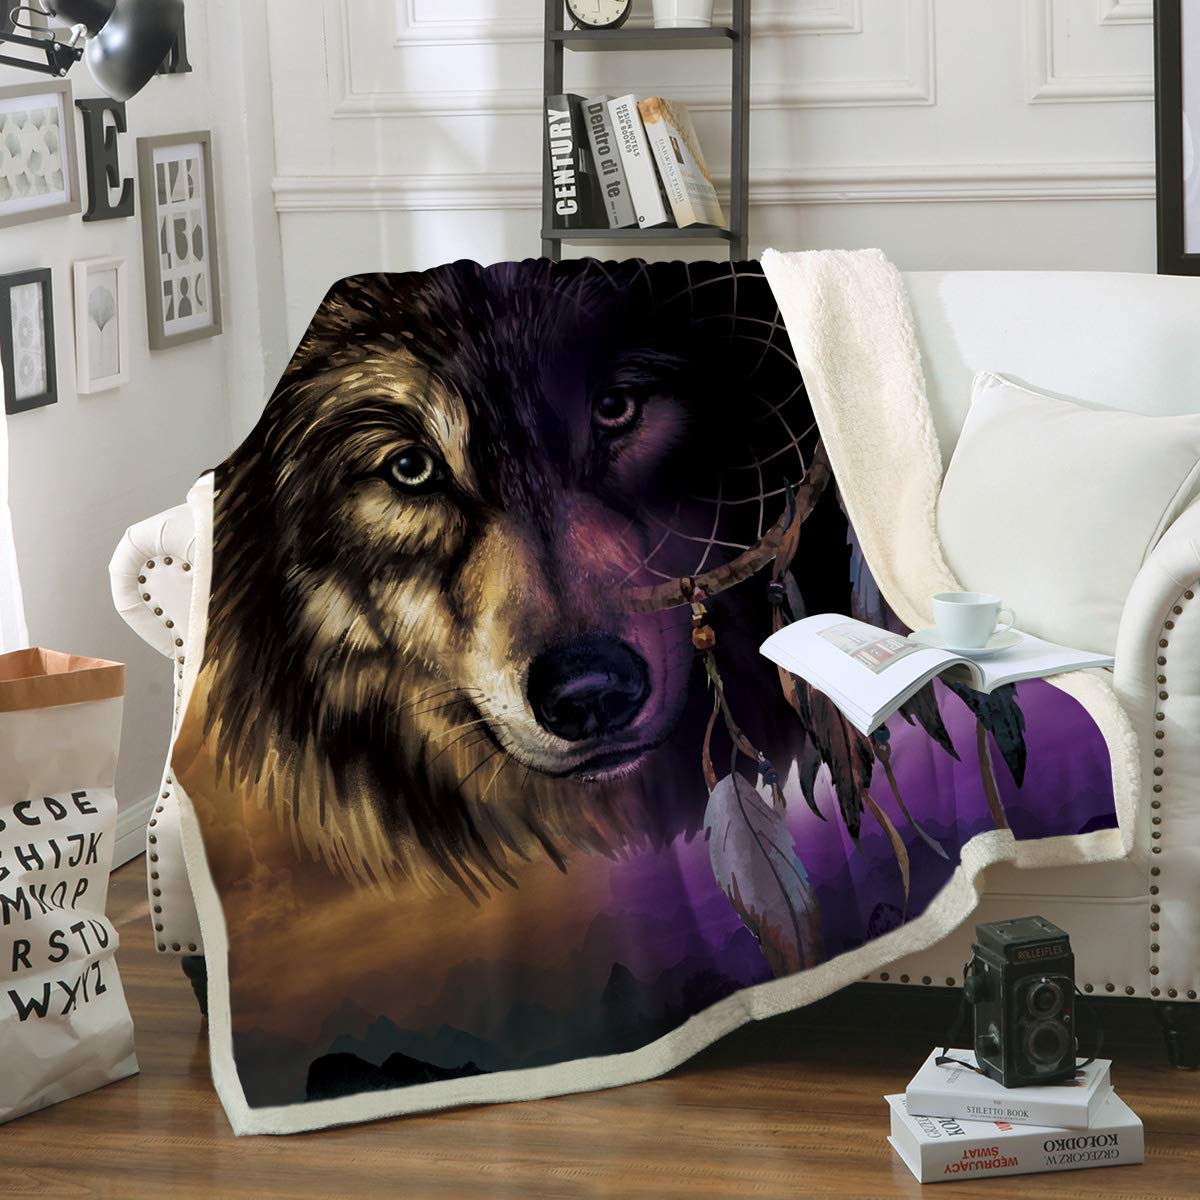 "Sleepwish Wolf Dreamcatcher Fleece Throw Blanket Native American Super Plush Blanket Brown Purple Wolf Blanket for Bed Couch Travelling (50"" x 60"")"